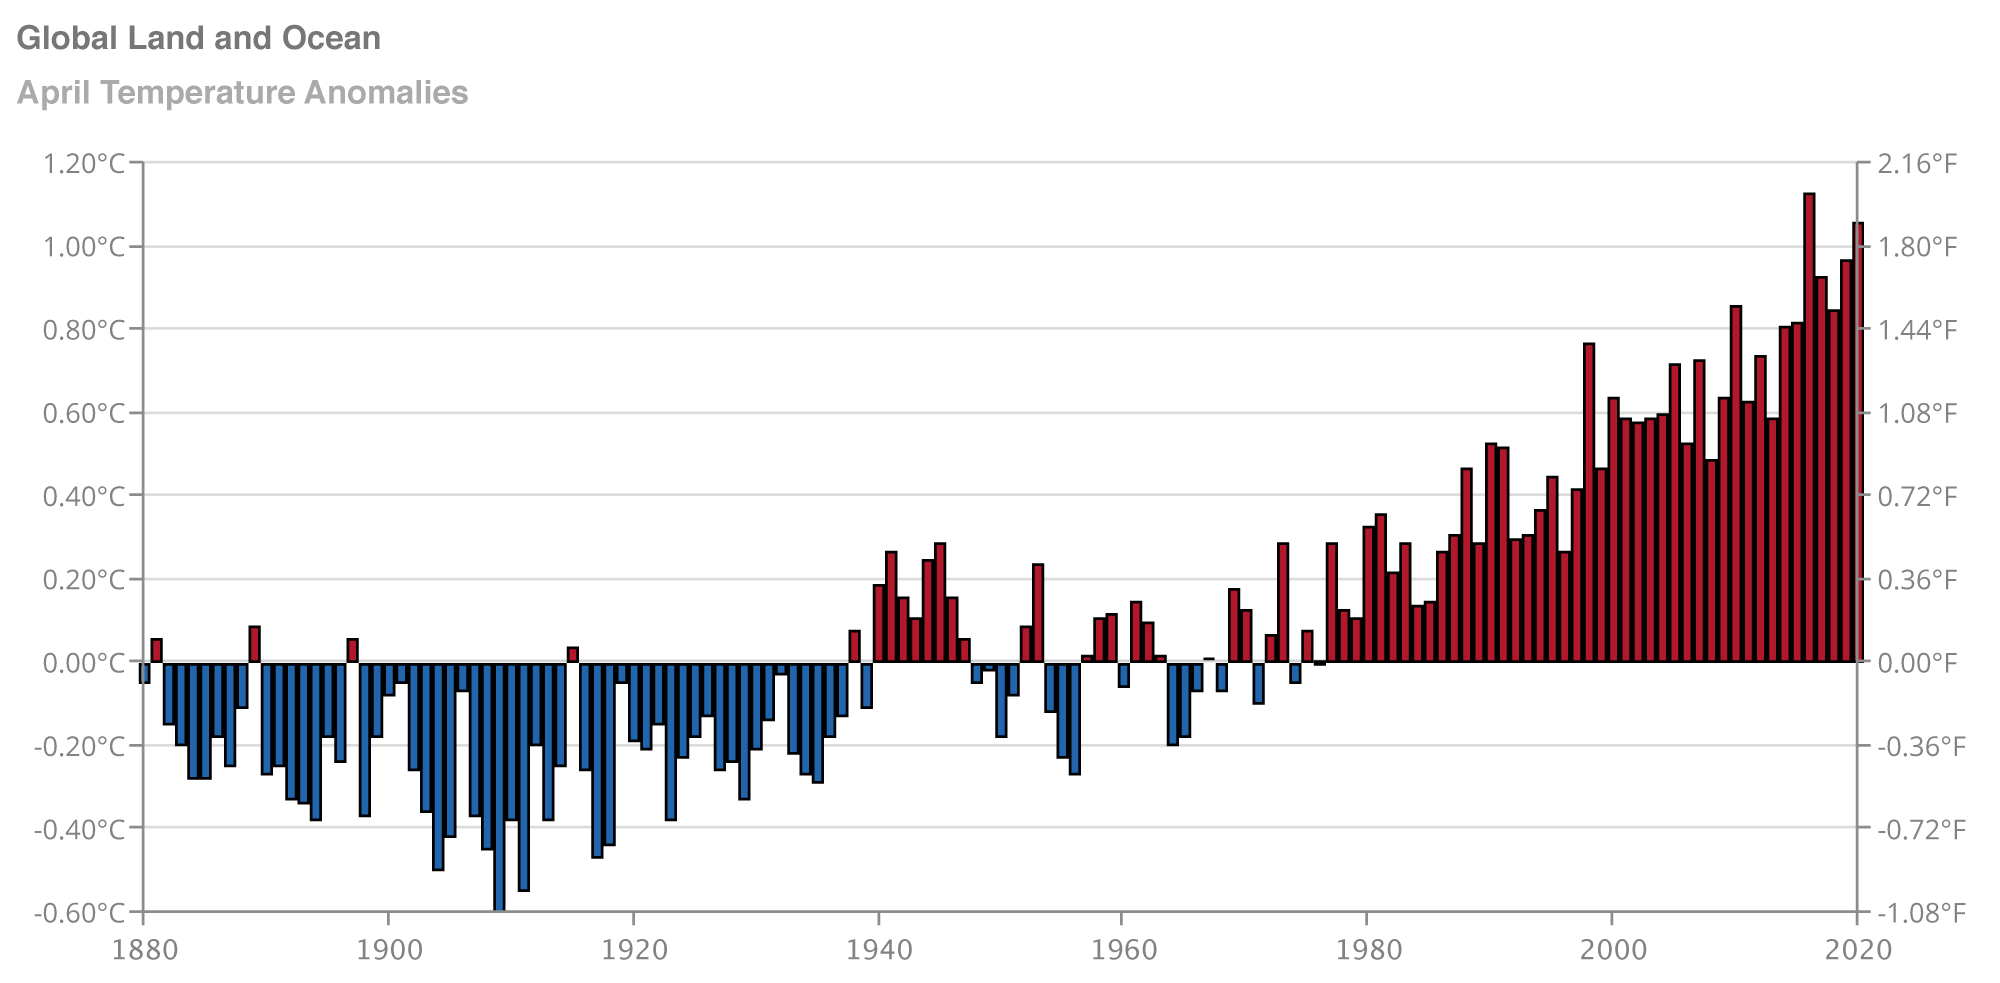 Graph showing the global land-ocean surface temperature anomaly over time.